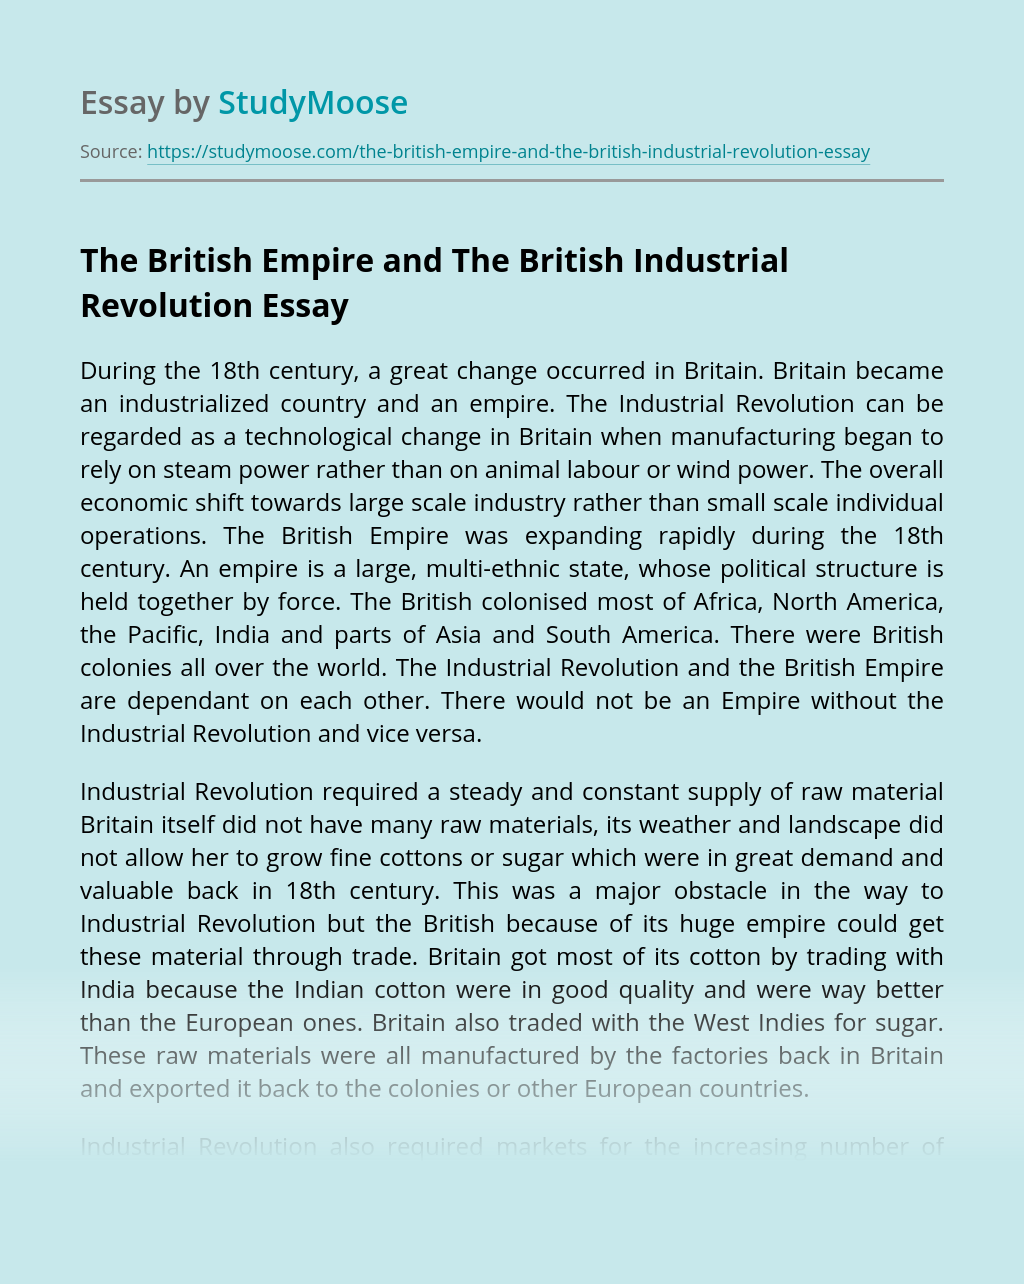 The British Empire and The British Industrial Revolution